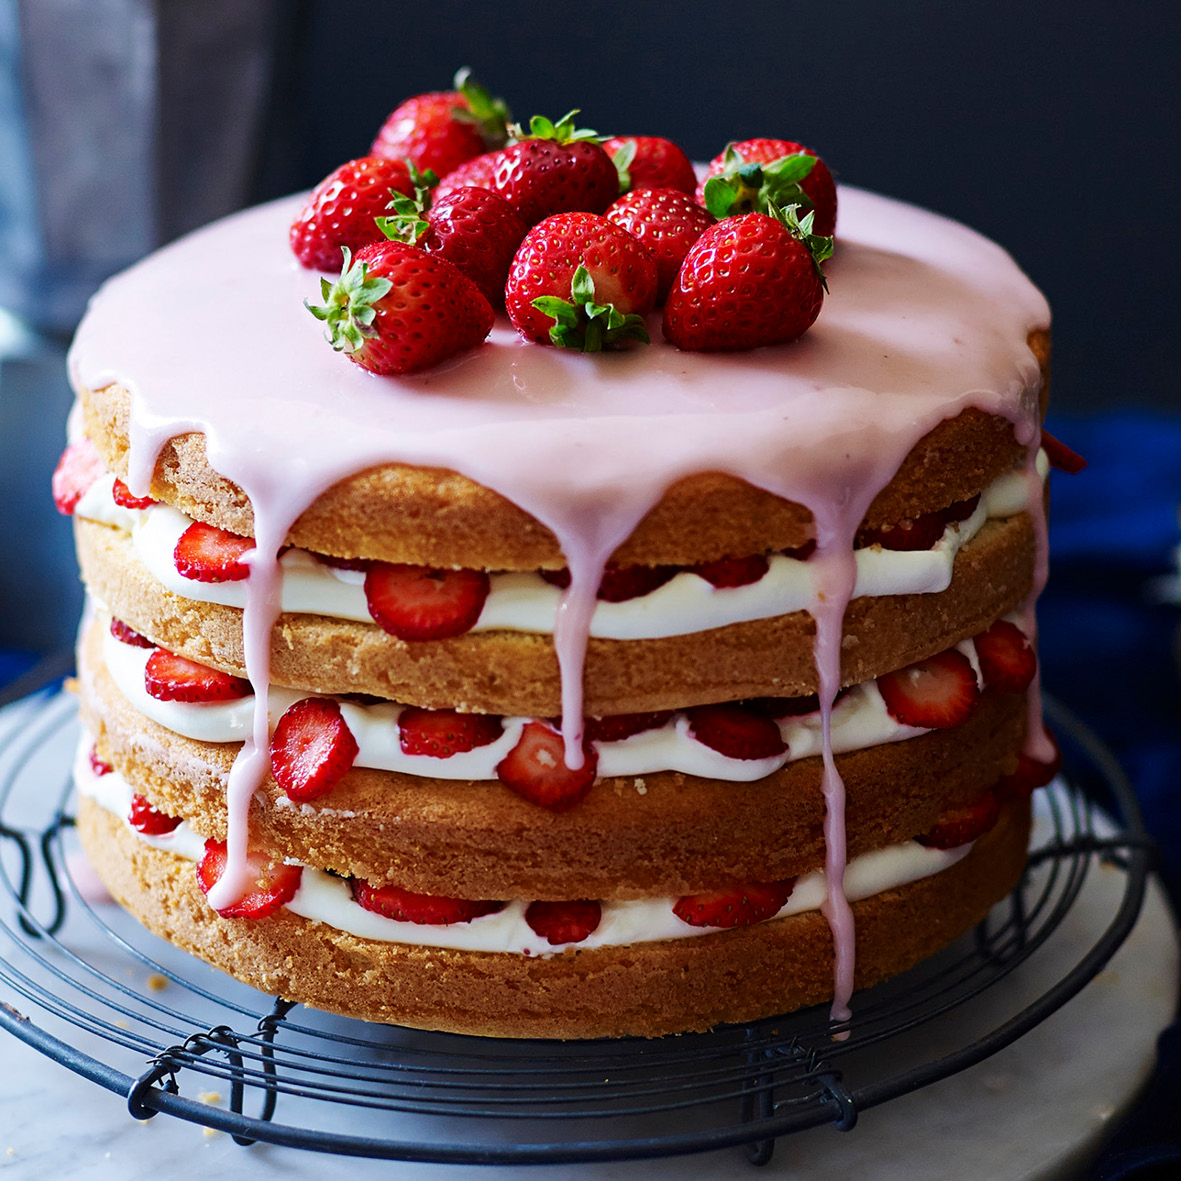 strawberry mascarpone cake.jpg